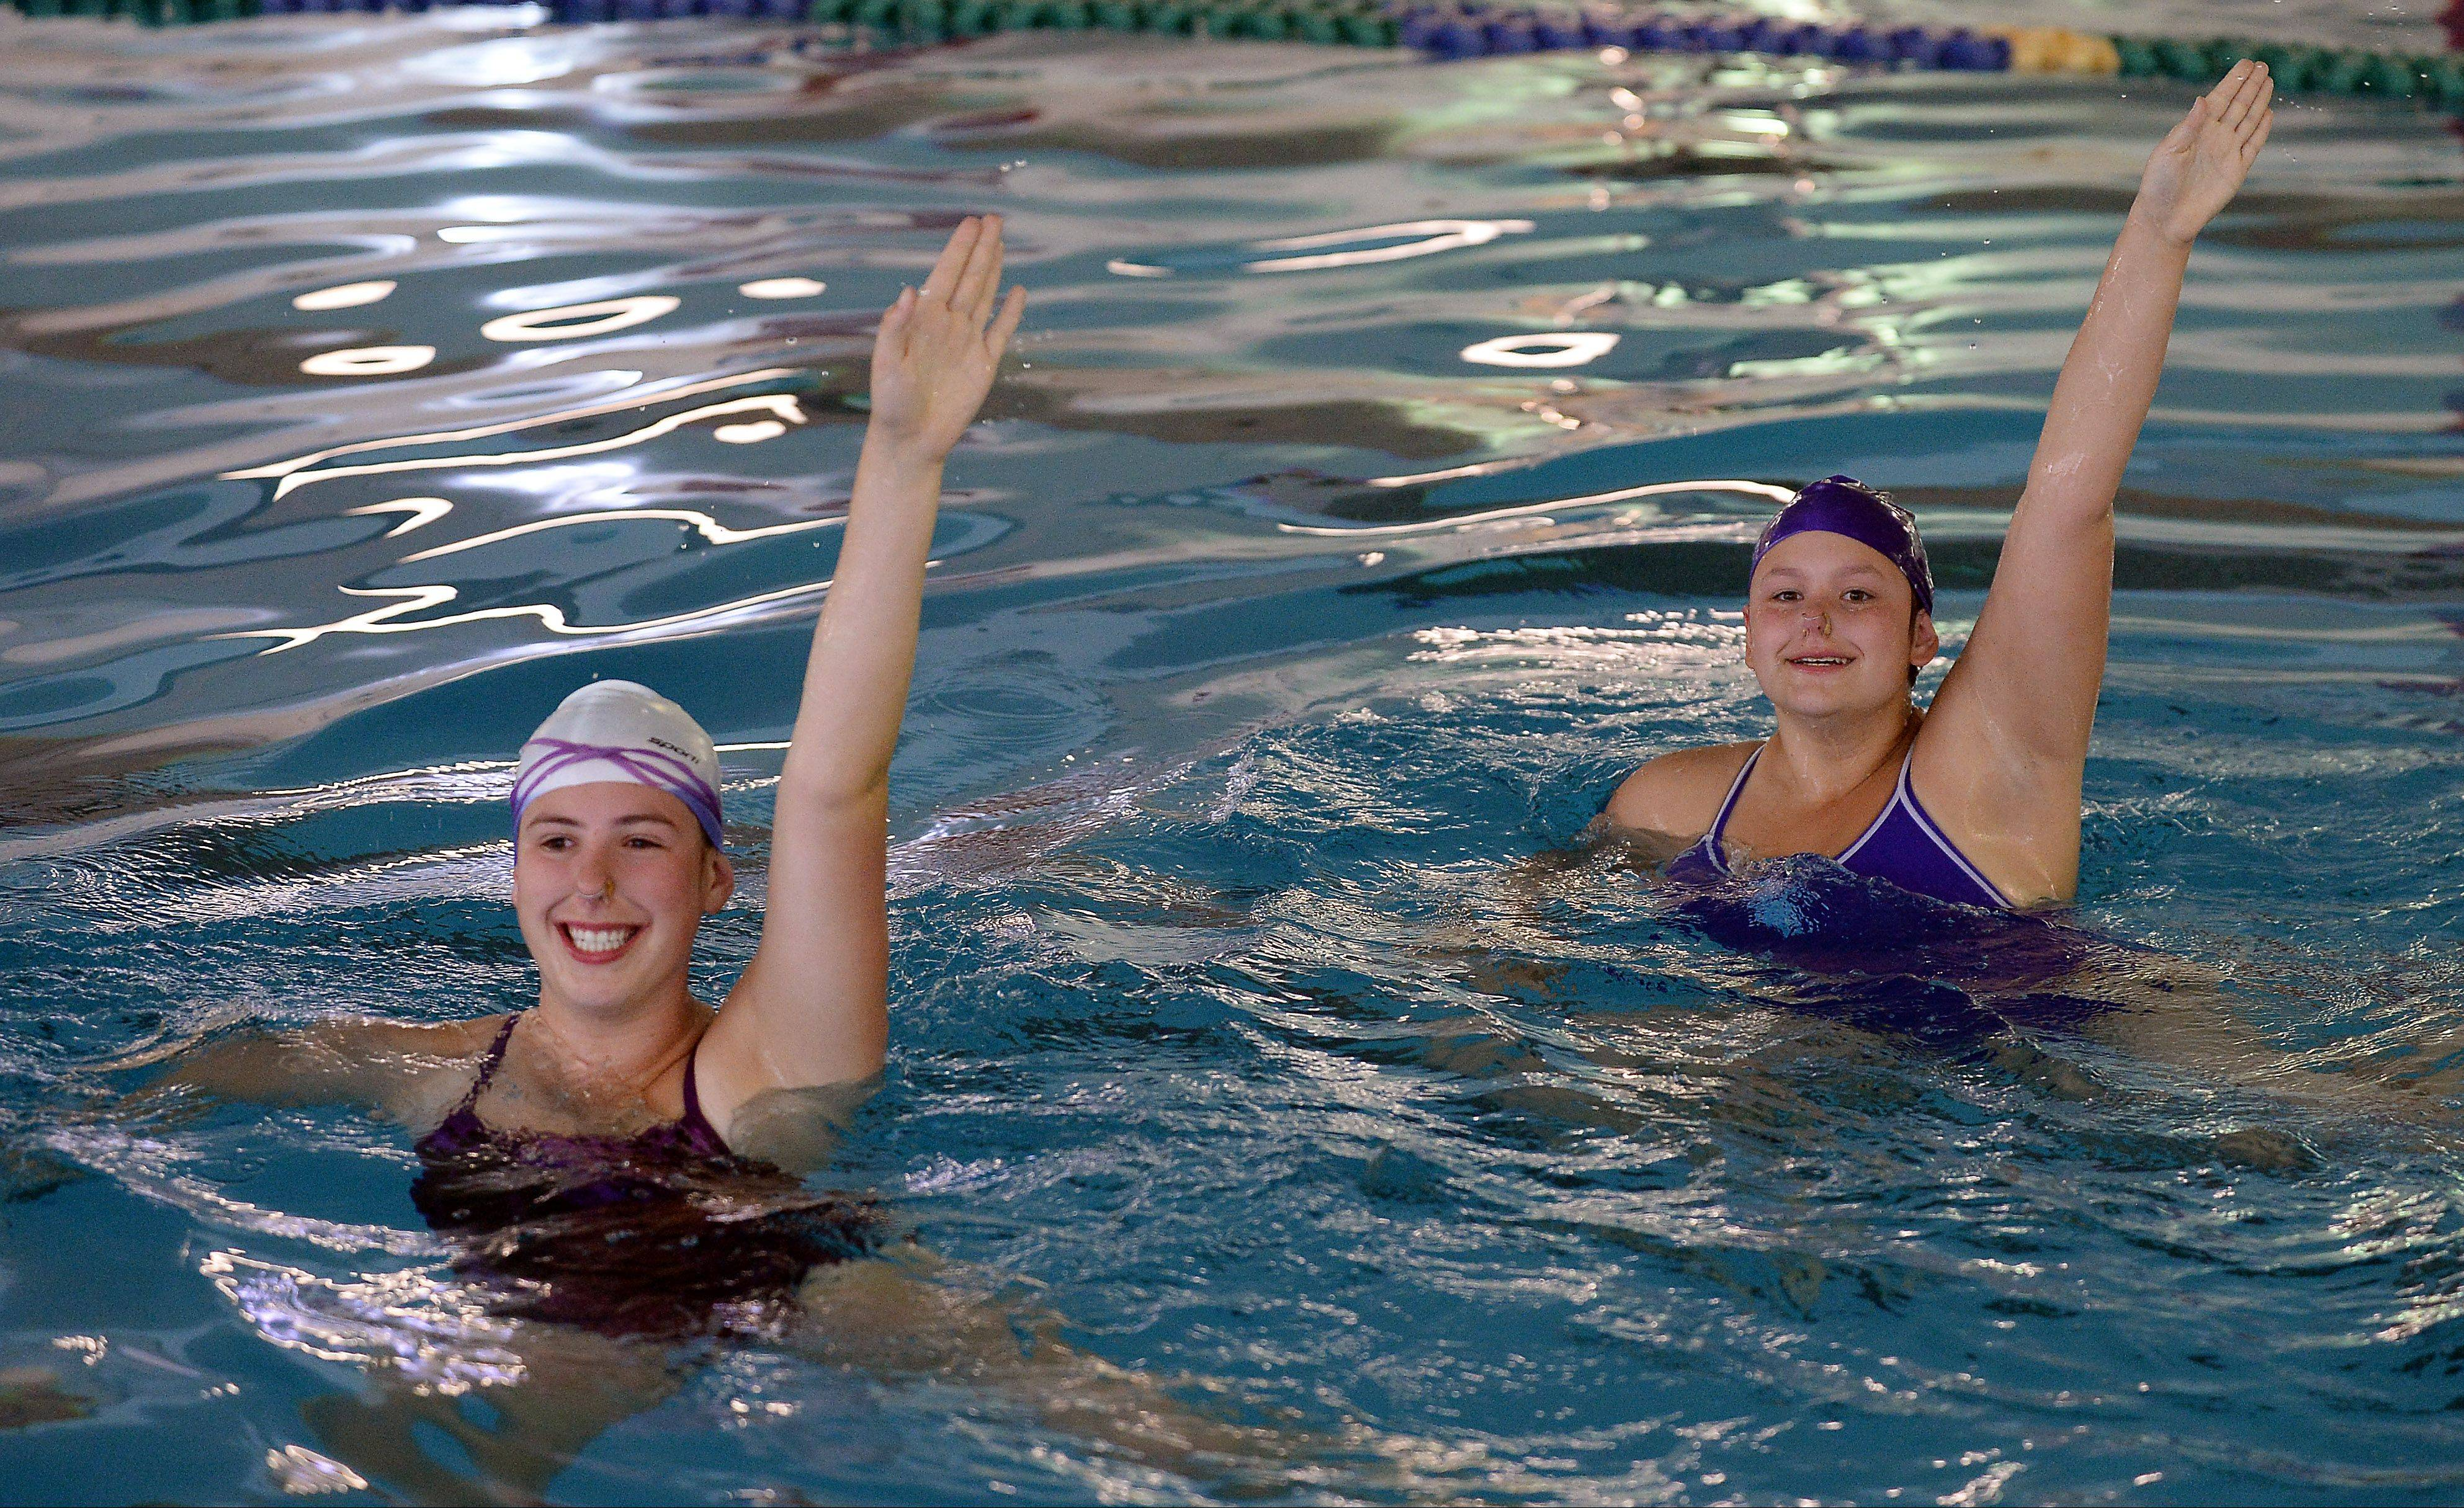 Alice Kenny, 15, of Mount Prospect, left, and Megan Moyer, 16, of Barrington practice their synchronized swimming as part of the Aqua Sprites at the Lattof YMCA.